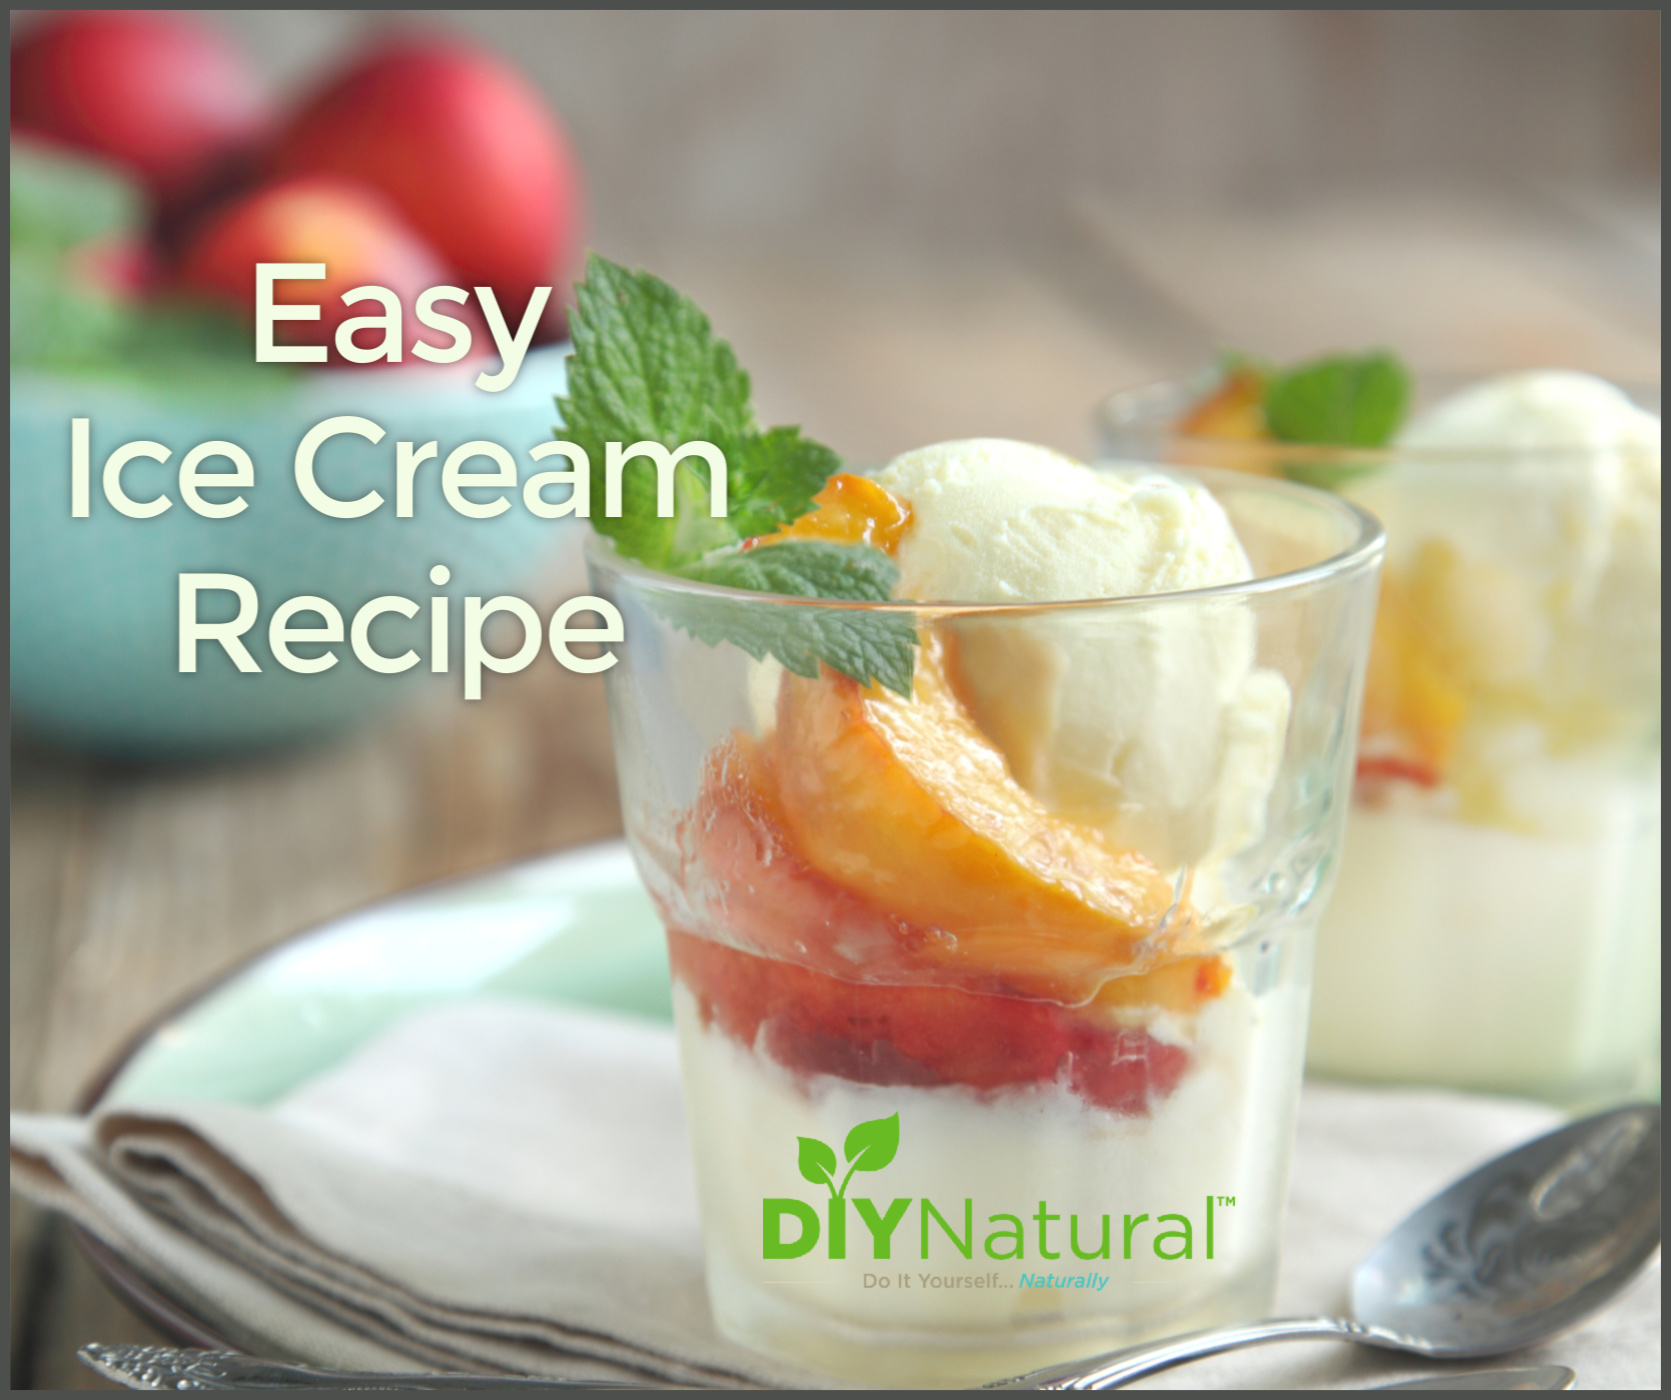 Easy Ice Cream Recipe Without An Ice Cream Maker